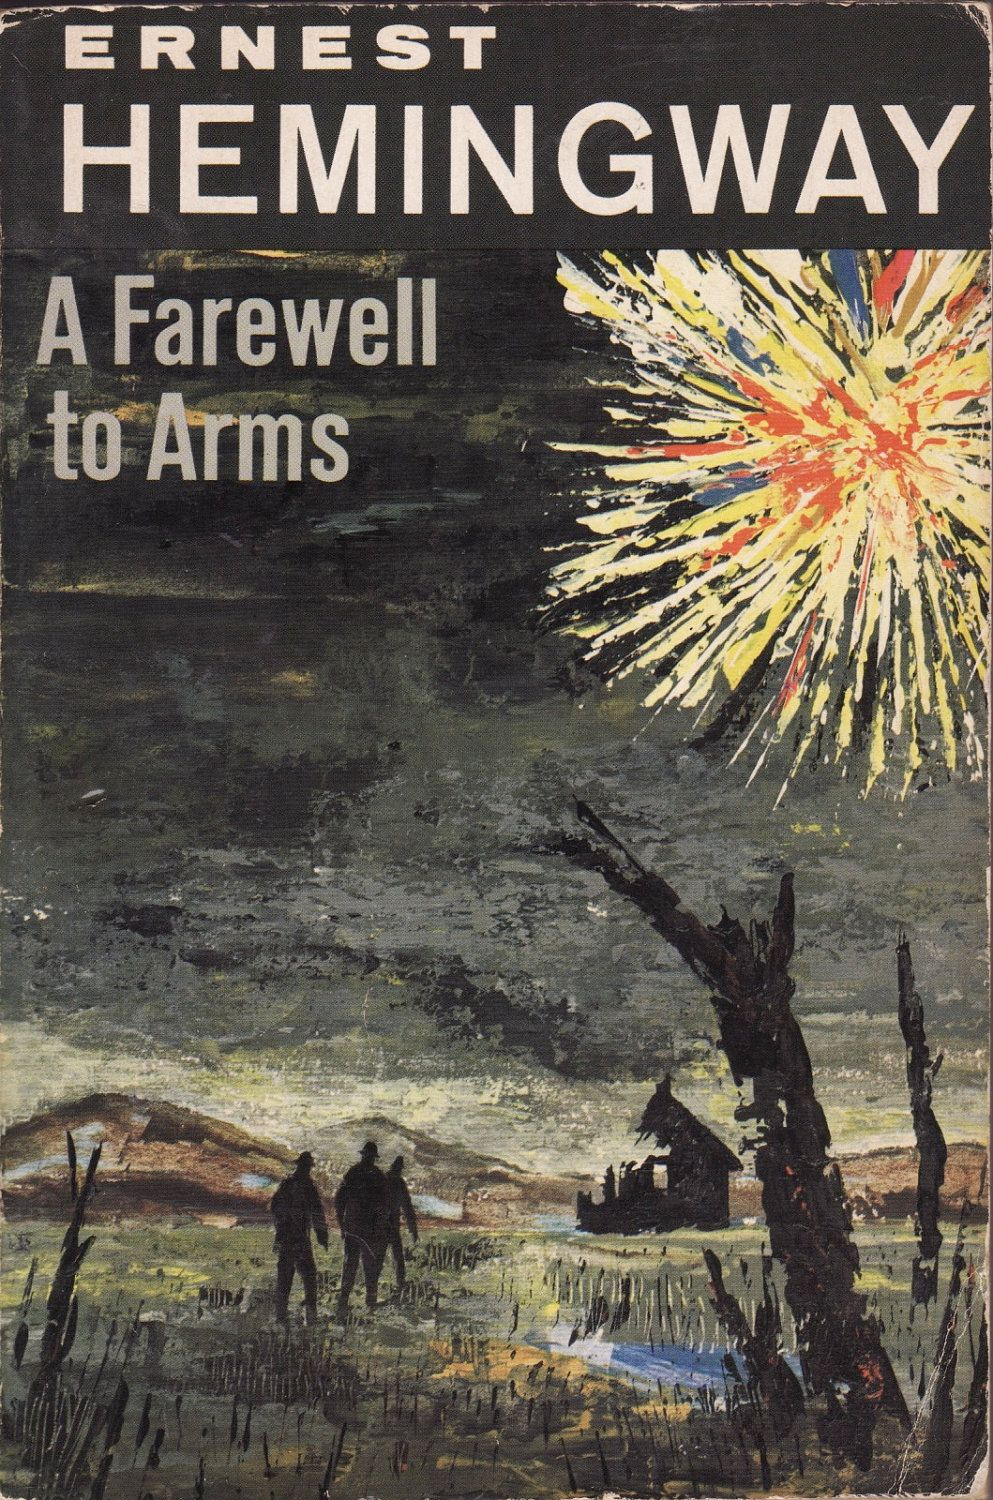 a synopsis of the book a farewell to arms by ernest hemingway Read this full essay on a farewell to arms by ernest hemingway ideas allow the reader to envelope themselves in the richness of the human particles generated by the thoughts and ideas of the characters and from hemingway himselfa majority of the objects are described with intricate detail.